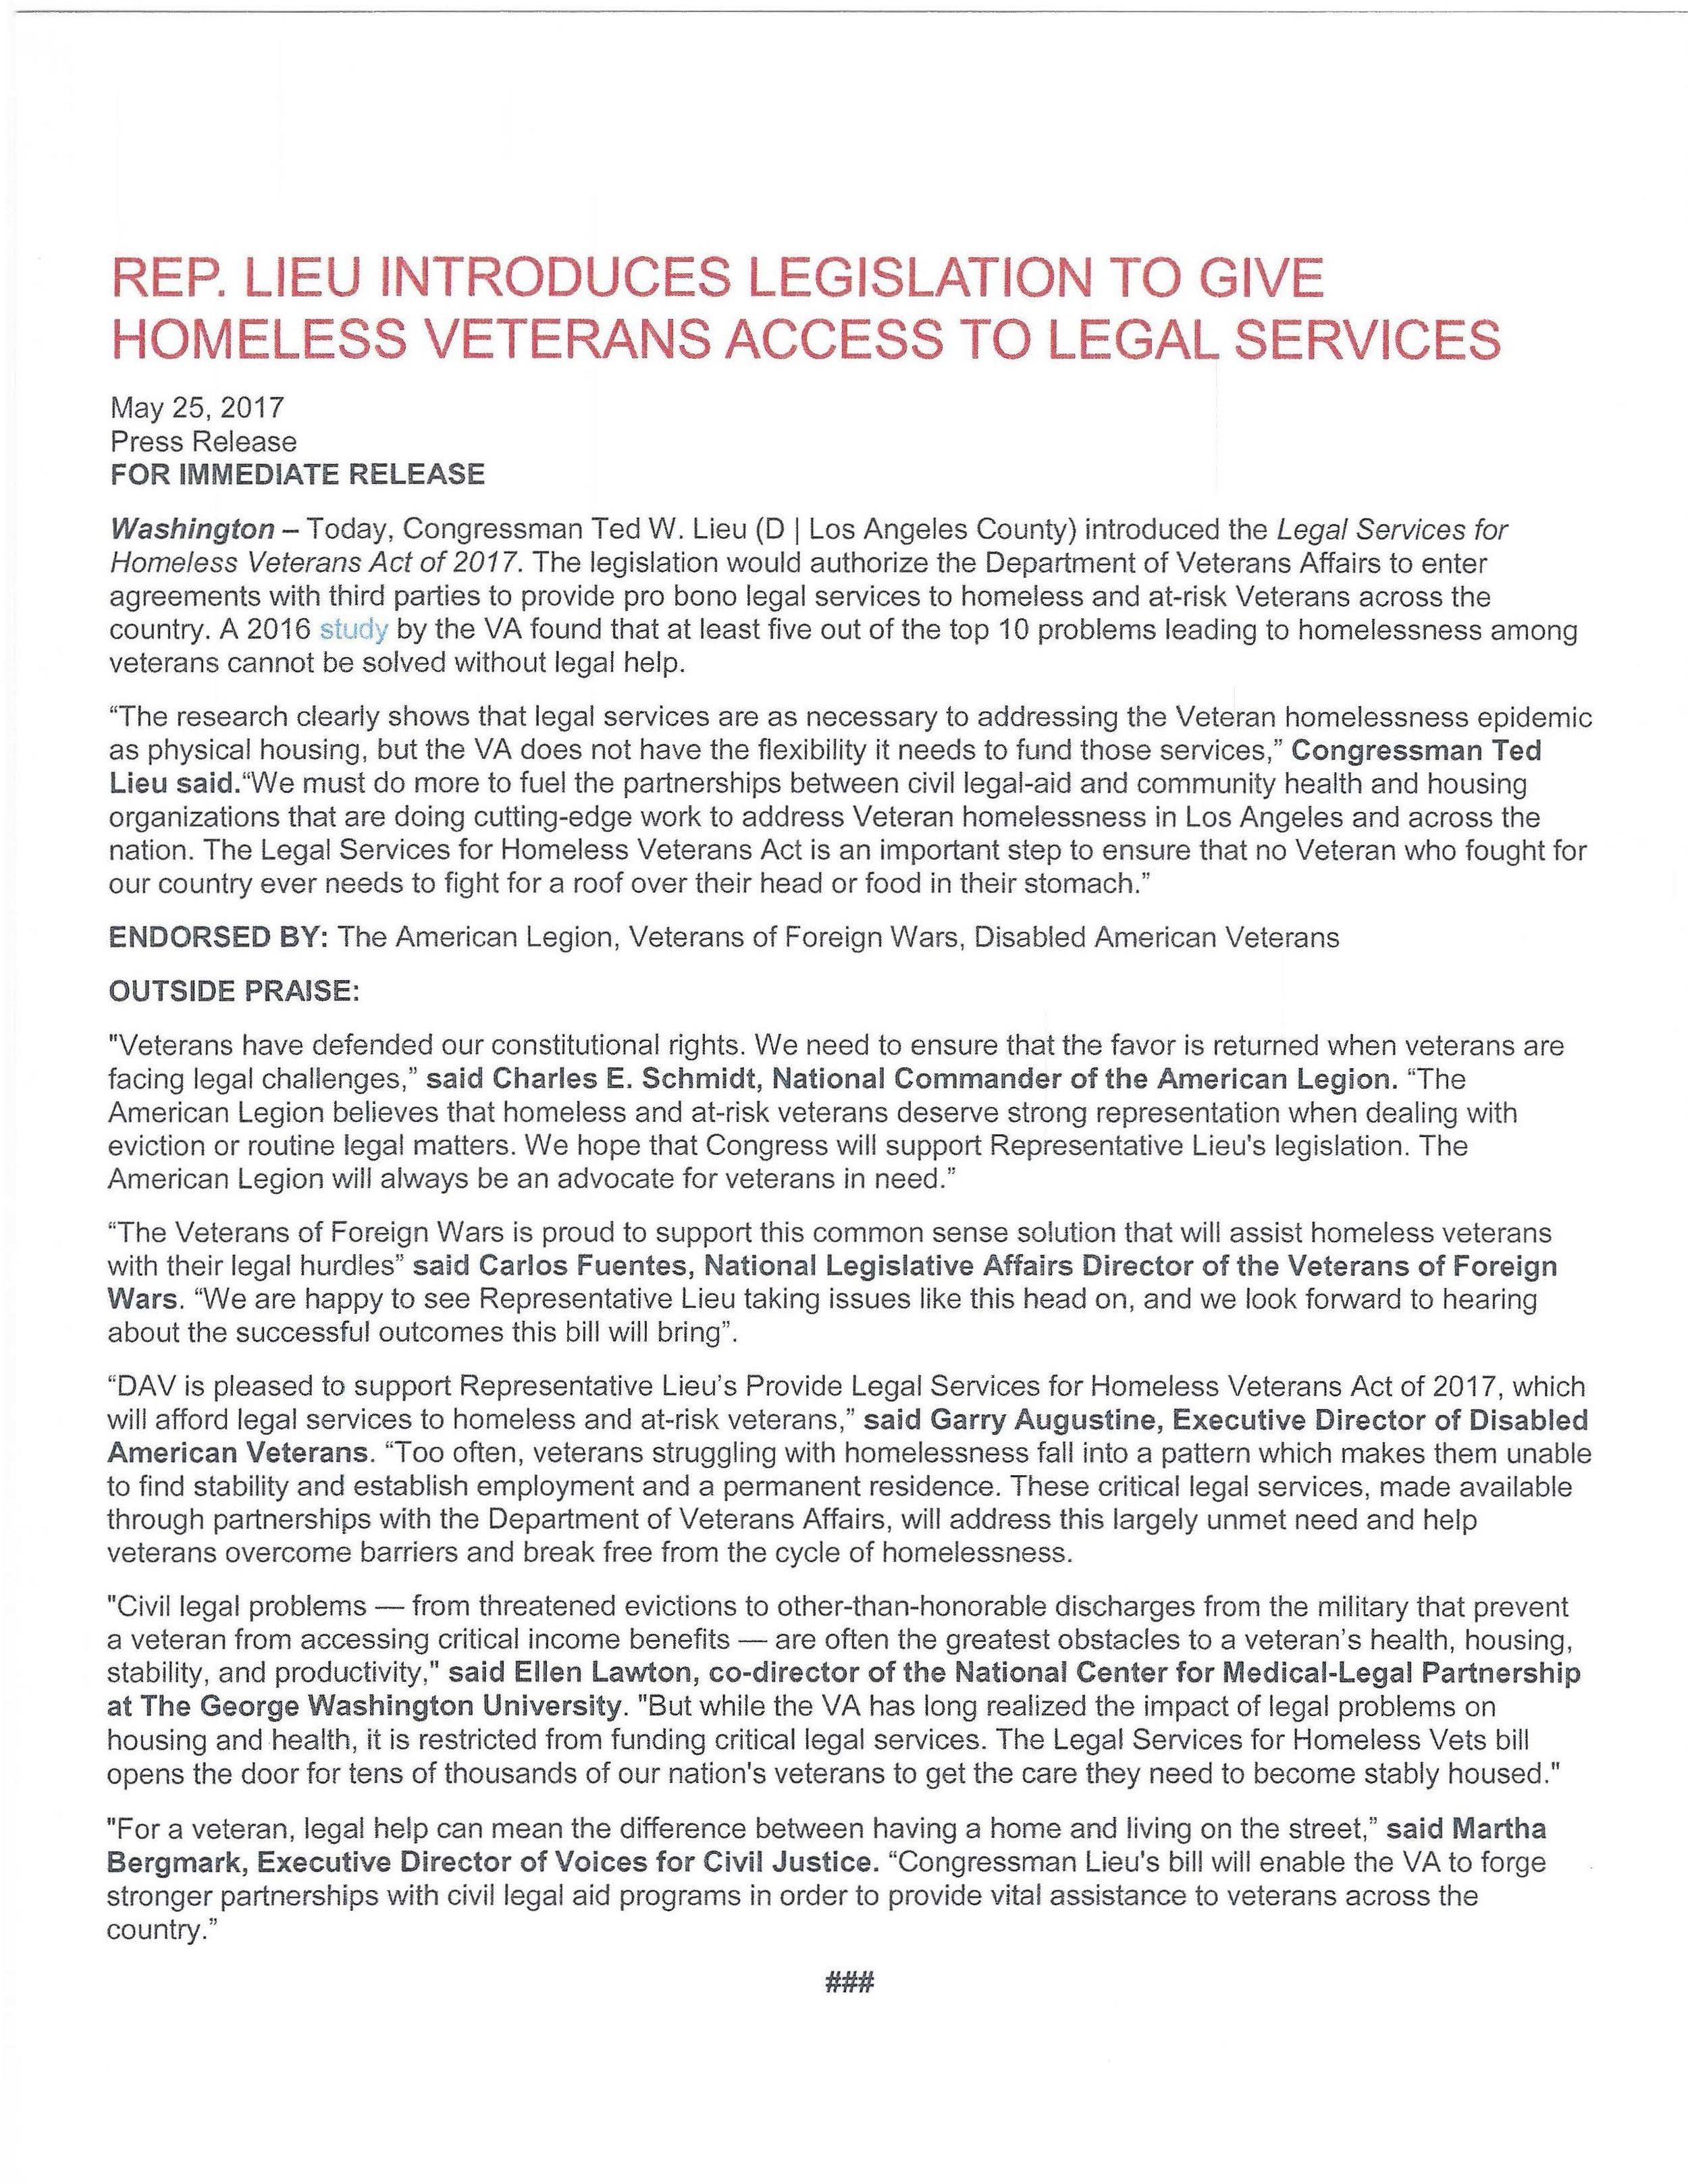 Legislation to give Homeless Veterans Access to Legal Services